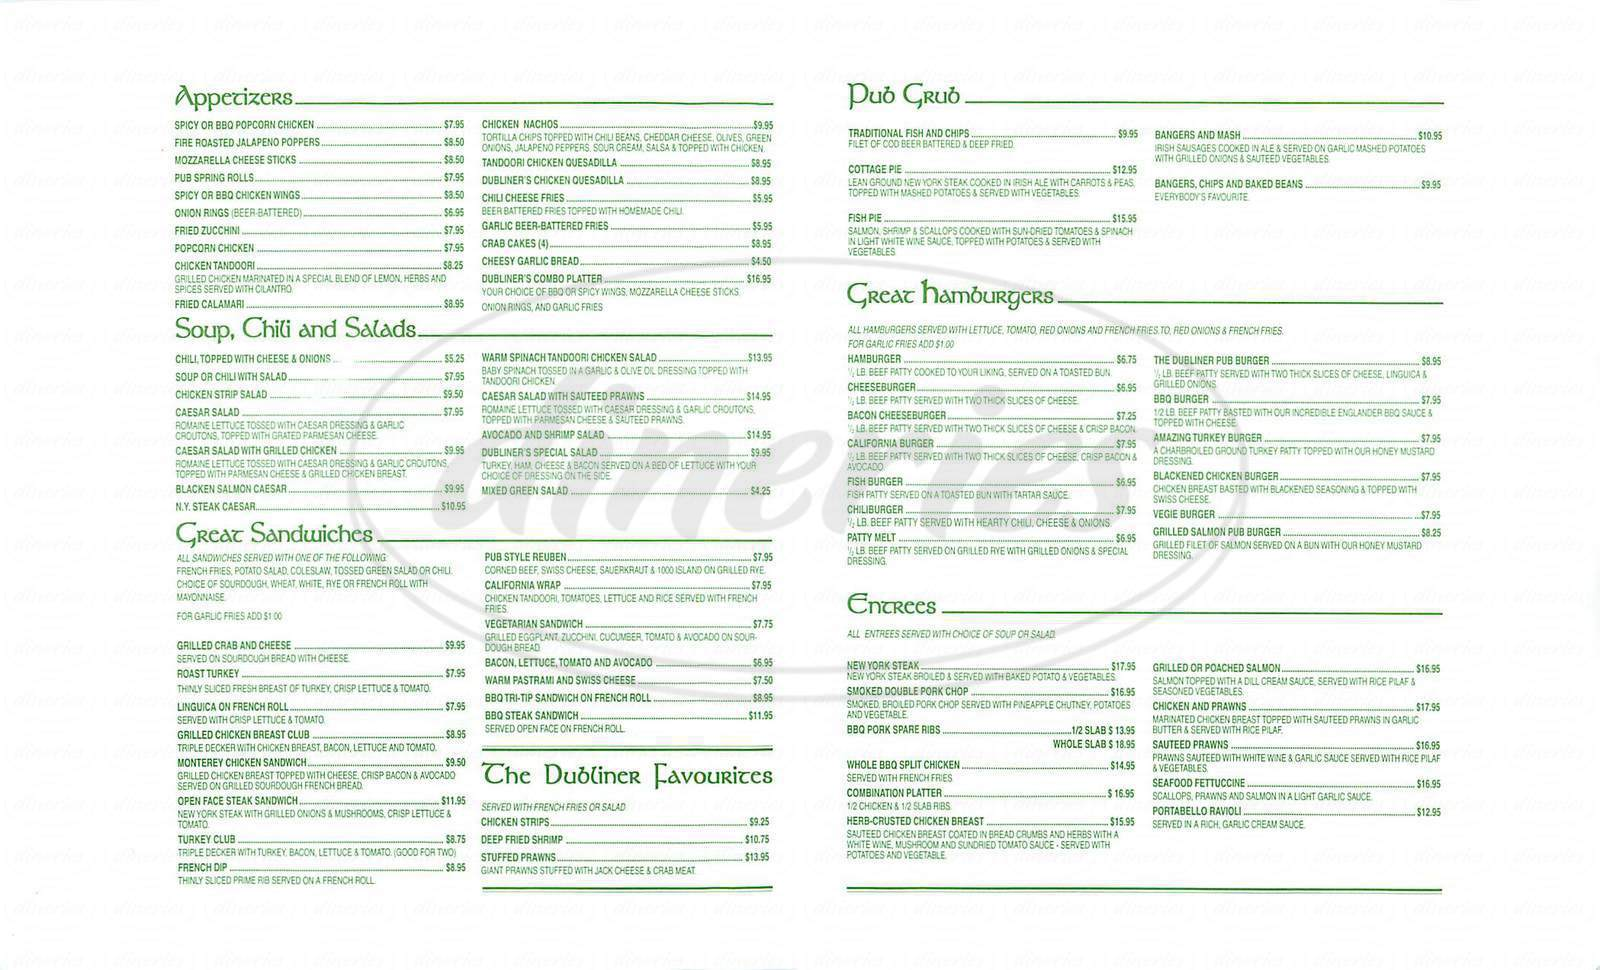 menu for Dublin Sports Pub & Grill